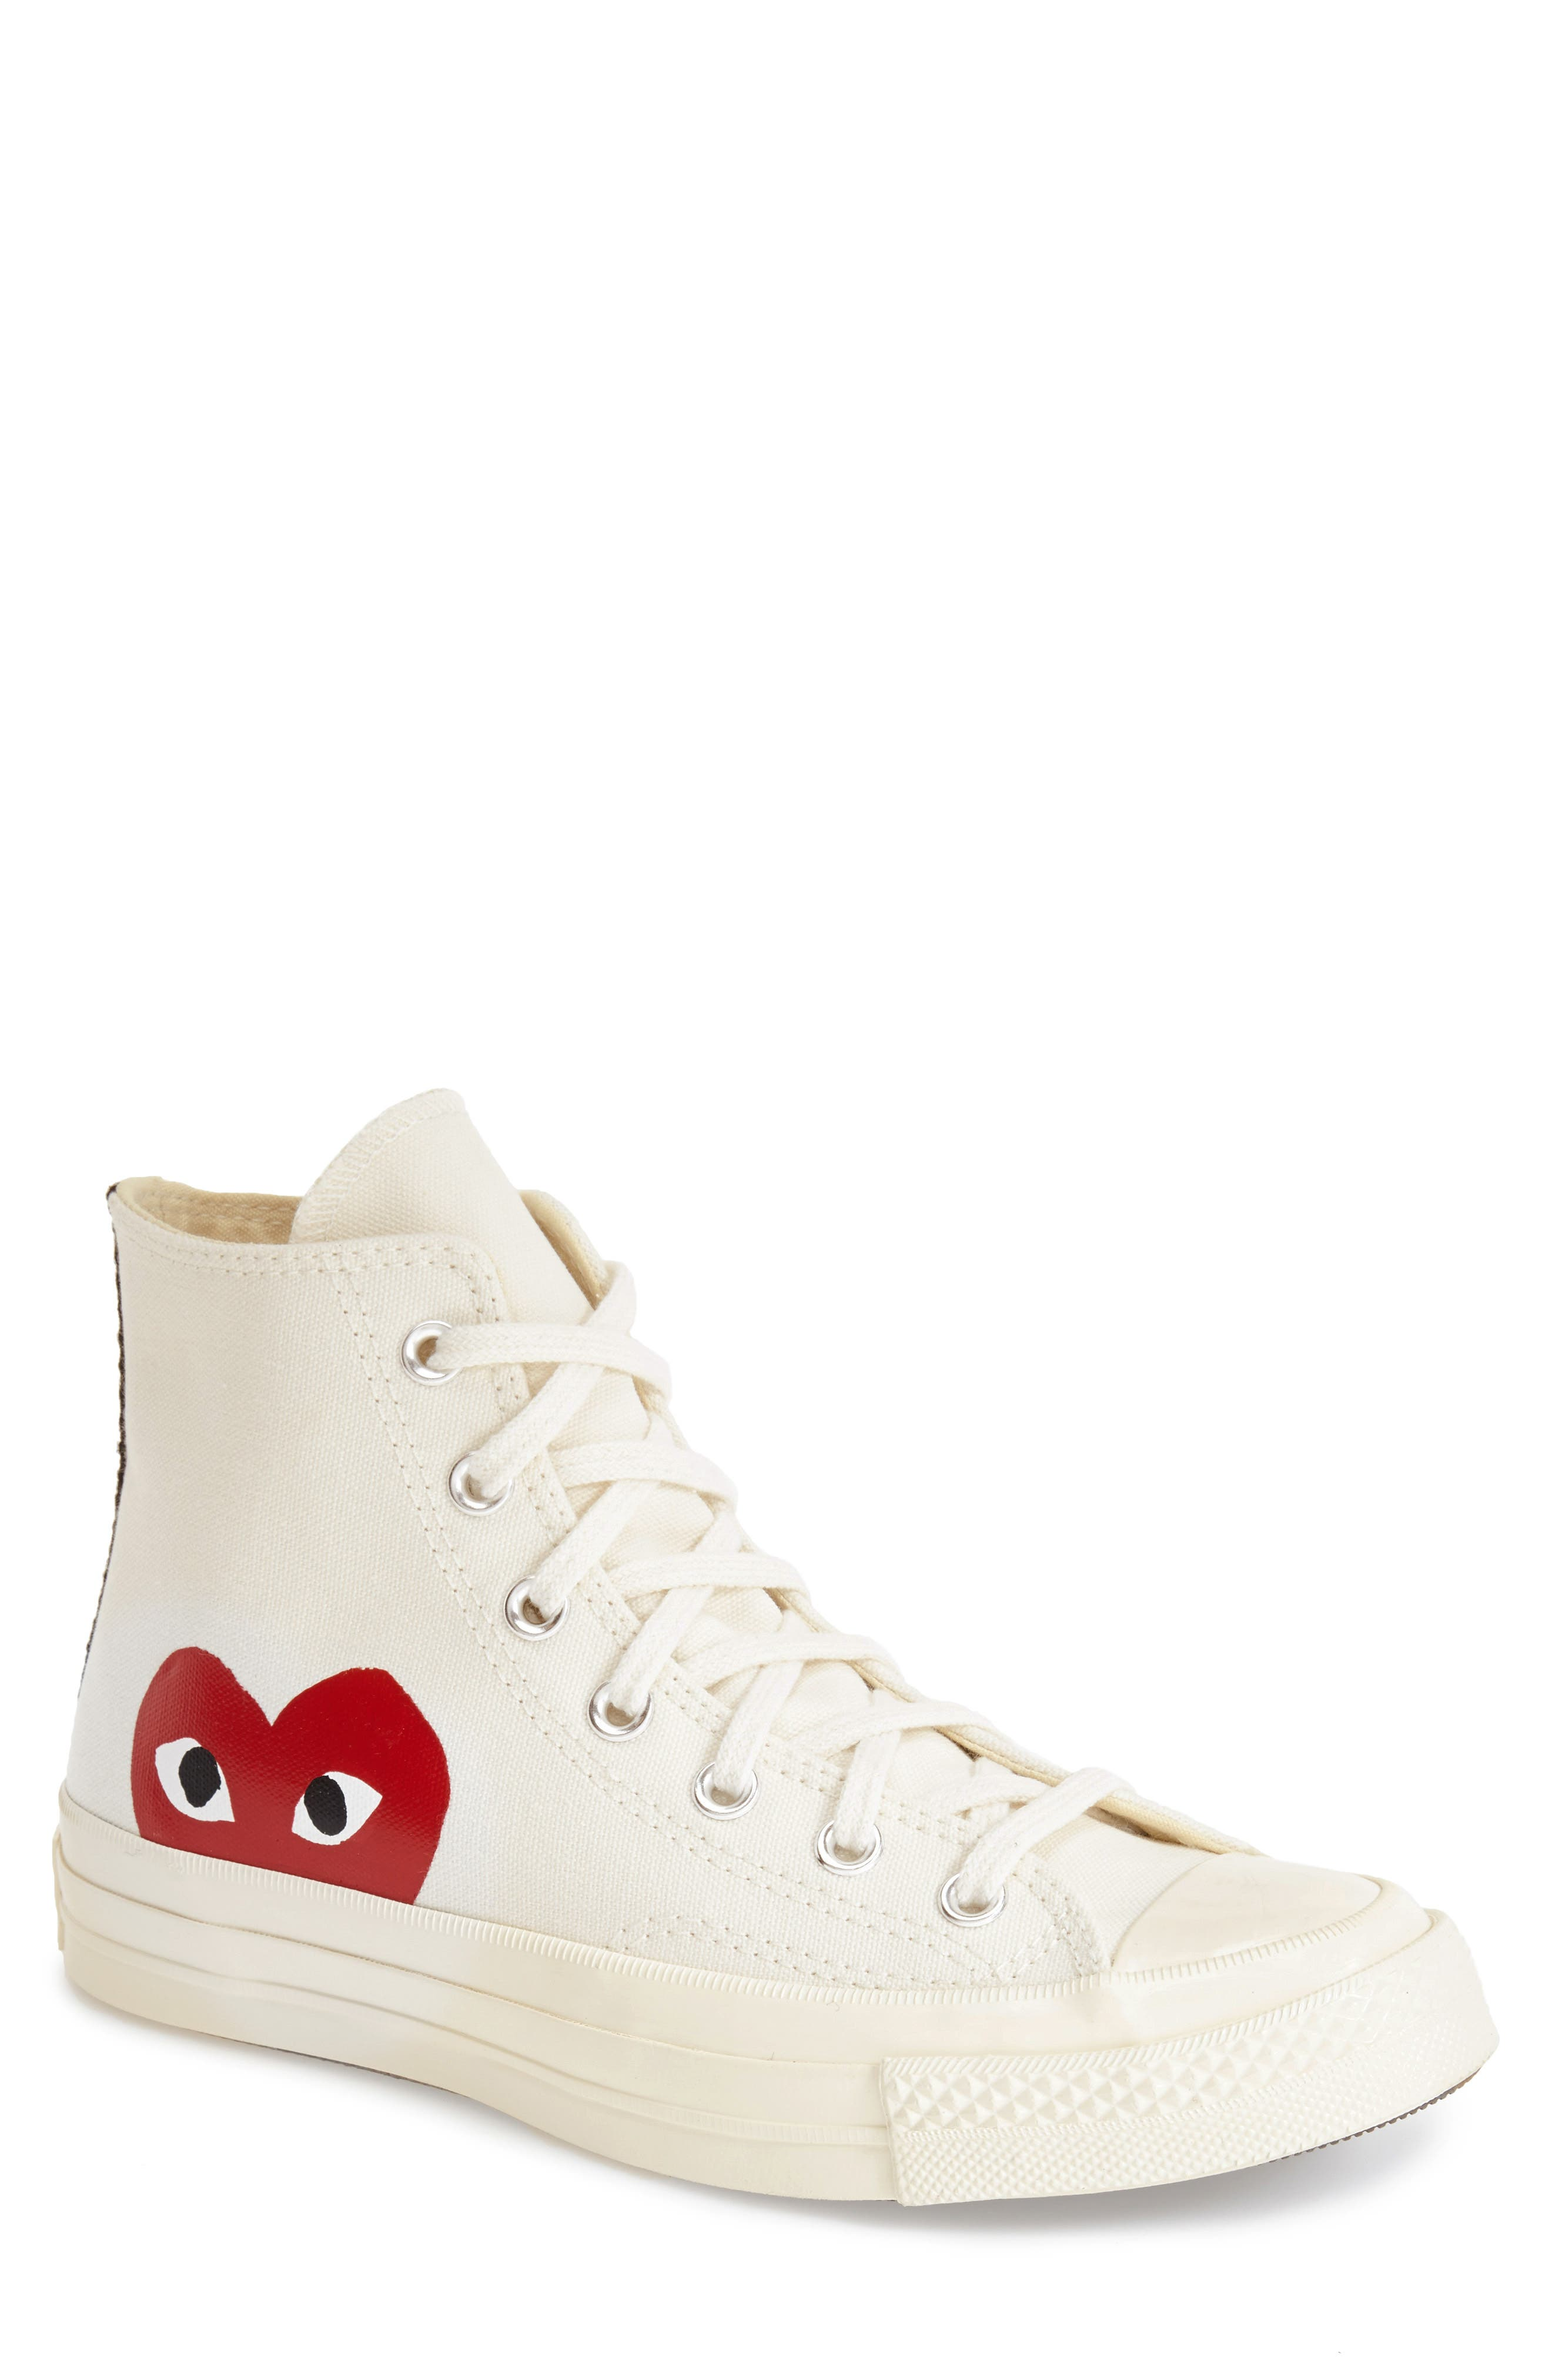 COMME DES GARÇONS,                             PLAY x Converse Chuck Taylor<sup>®</sup> Hidden Heart High Top Sneaker,                             Main thumbnail 1, color,                             WHITE CANVAS